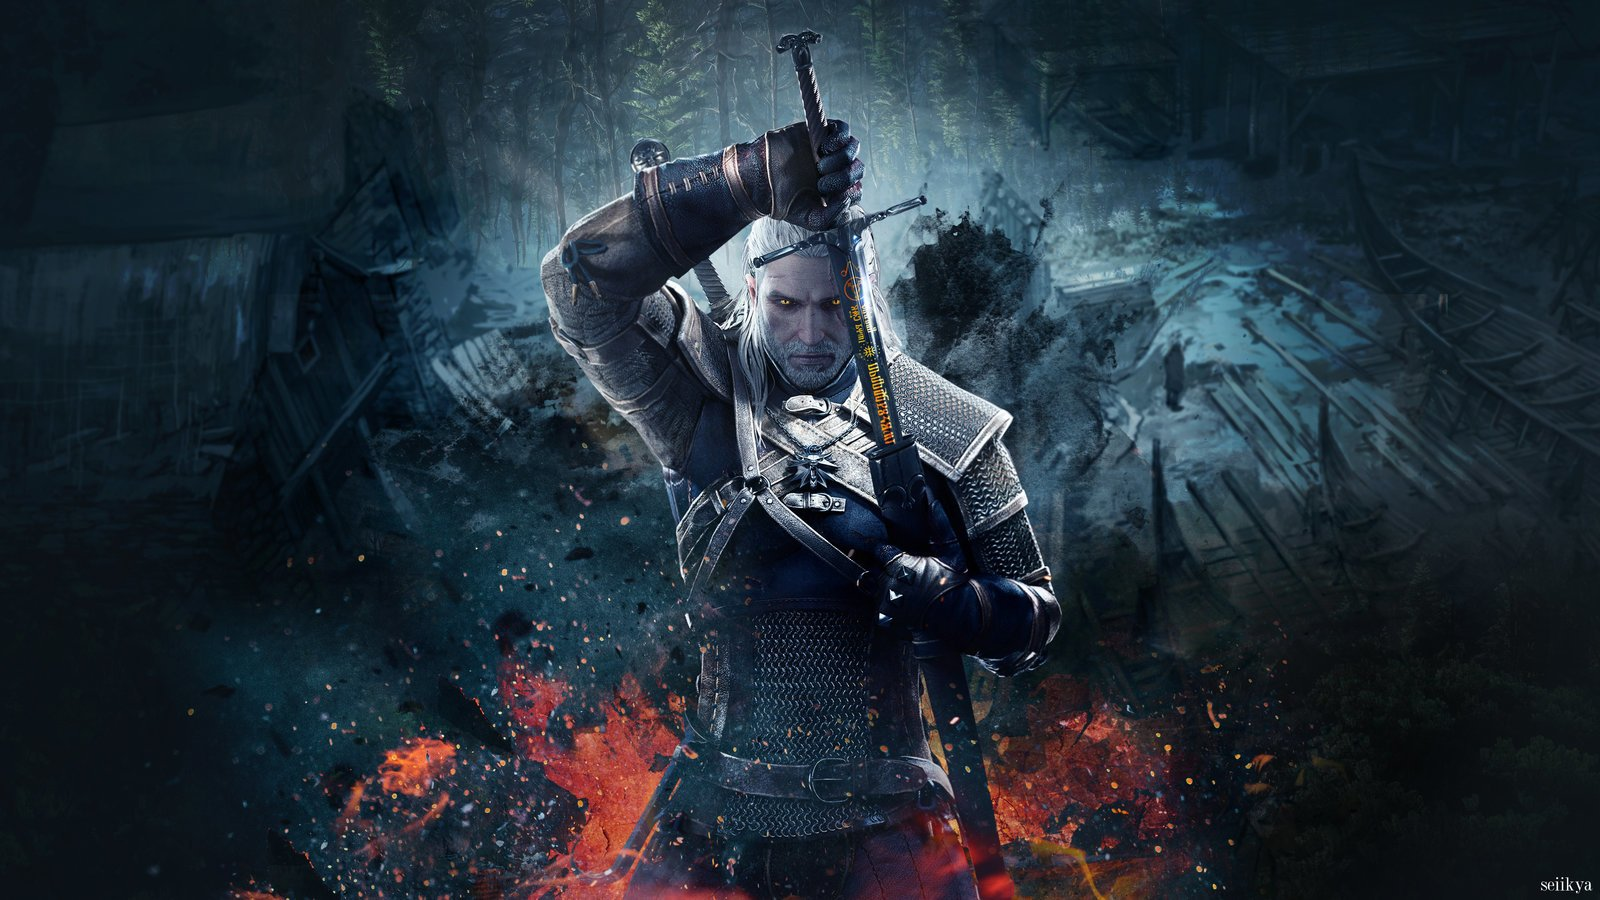 The Witcher 3: Wild Hunt Wallpaper and Backgrounds | 1600x900 | ID: 753199 ...